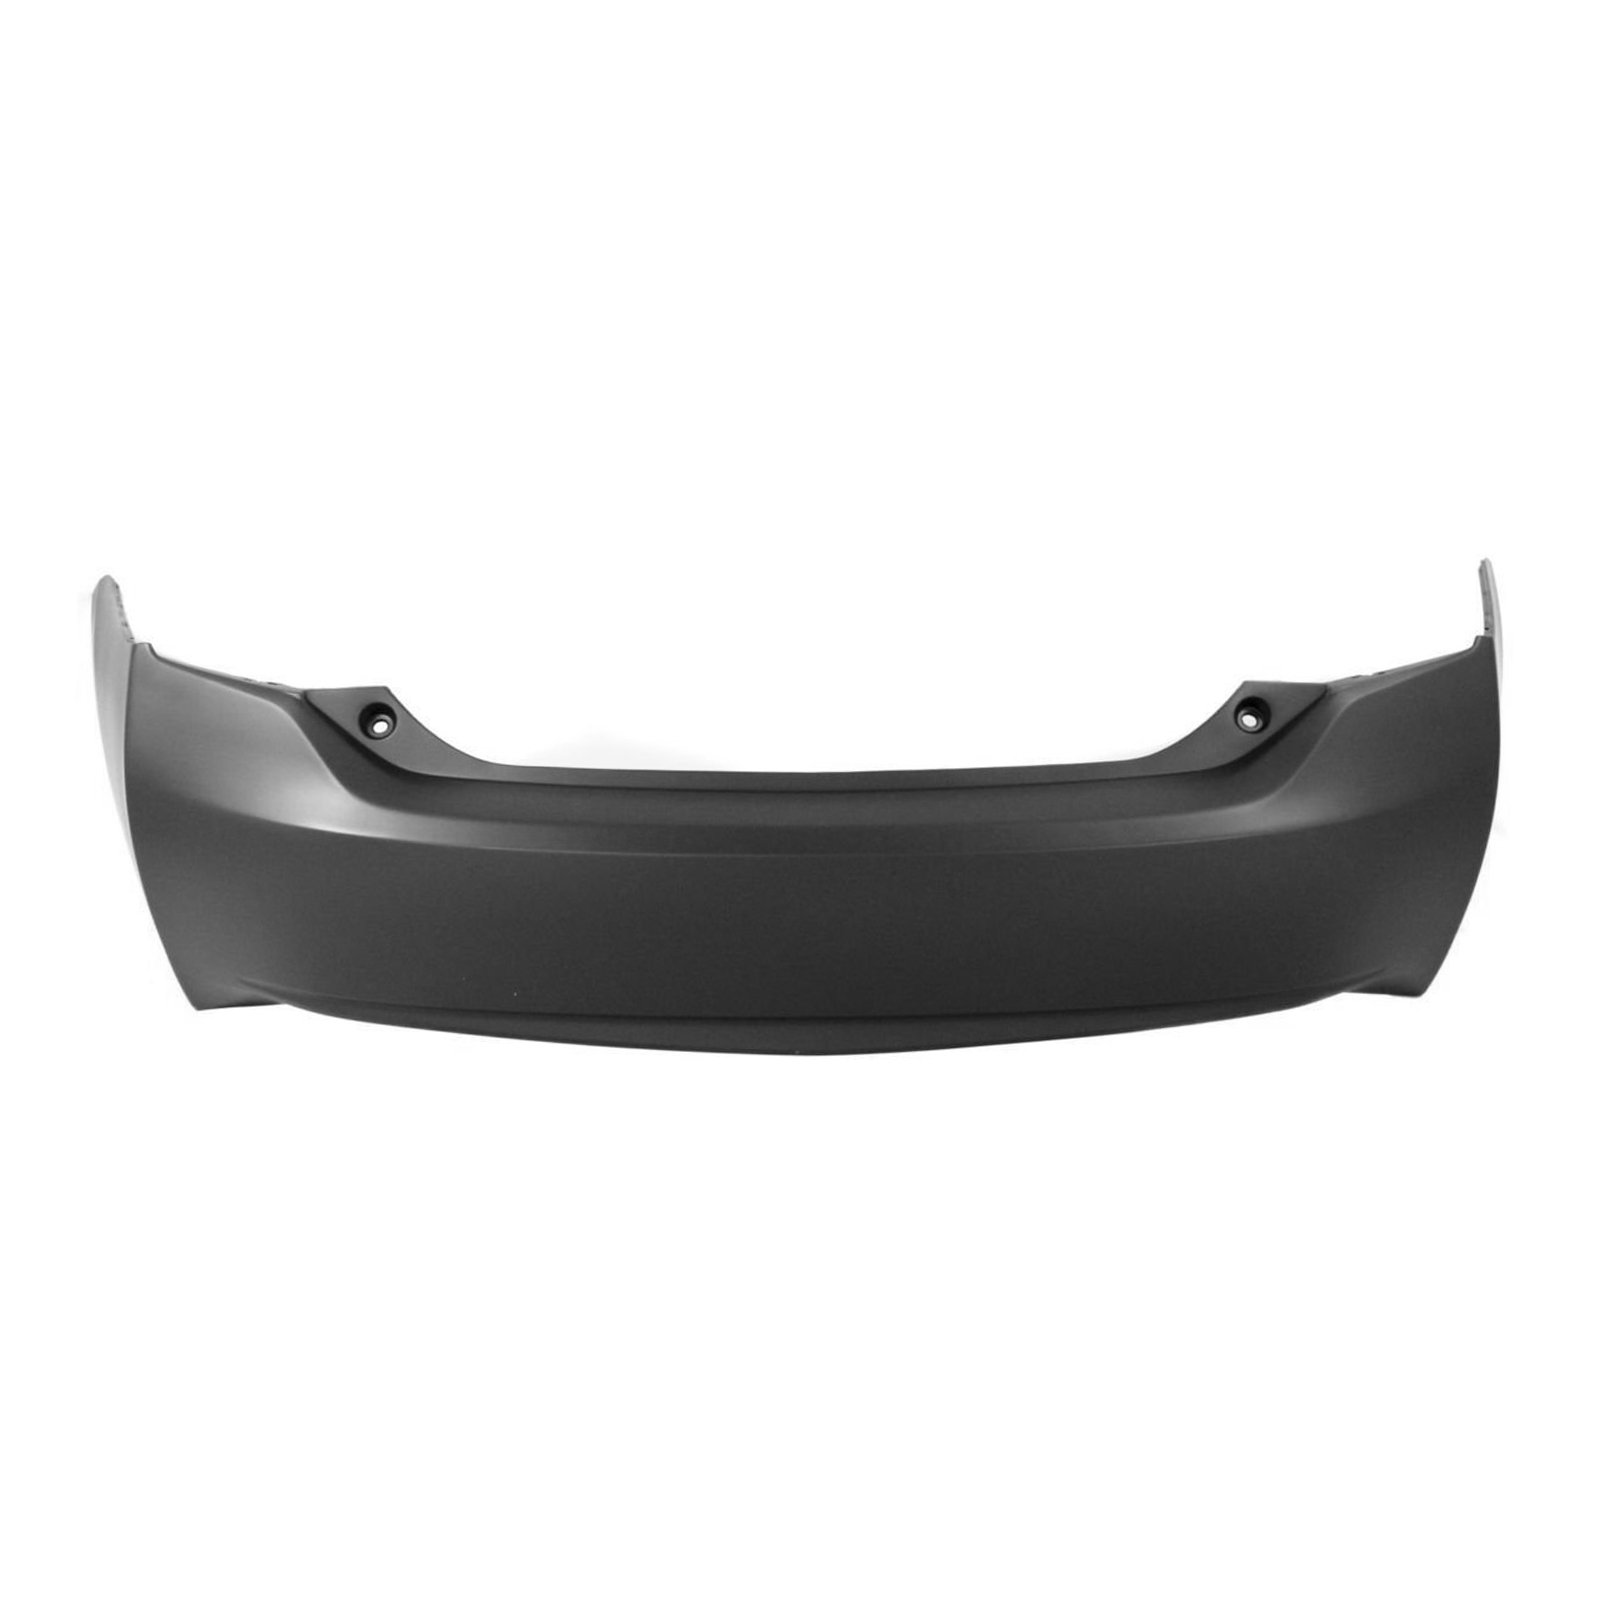 MBI AUTO - Painted to Match, Rear Bumper Cover for 2010-2015 Toyota Prius 10-15, TO1100280